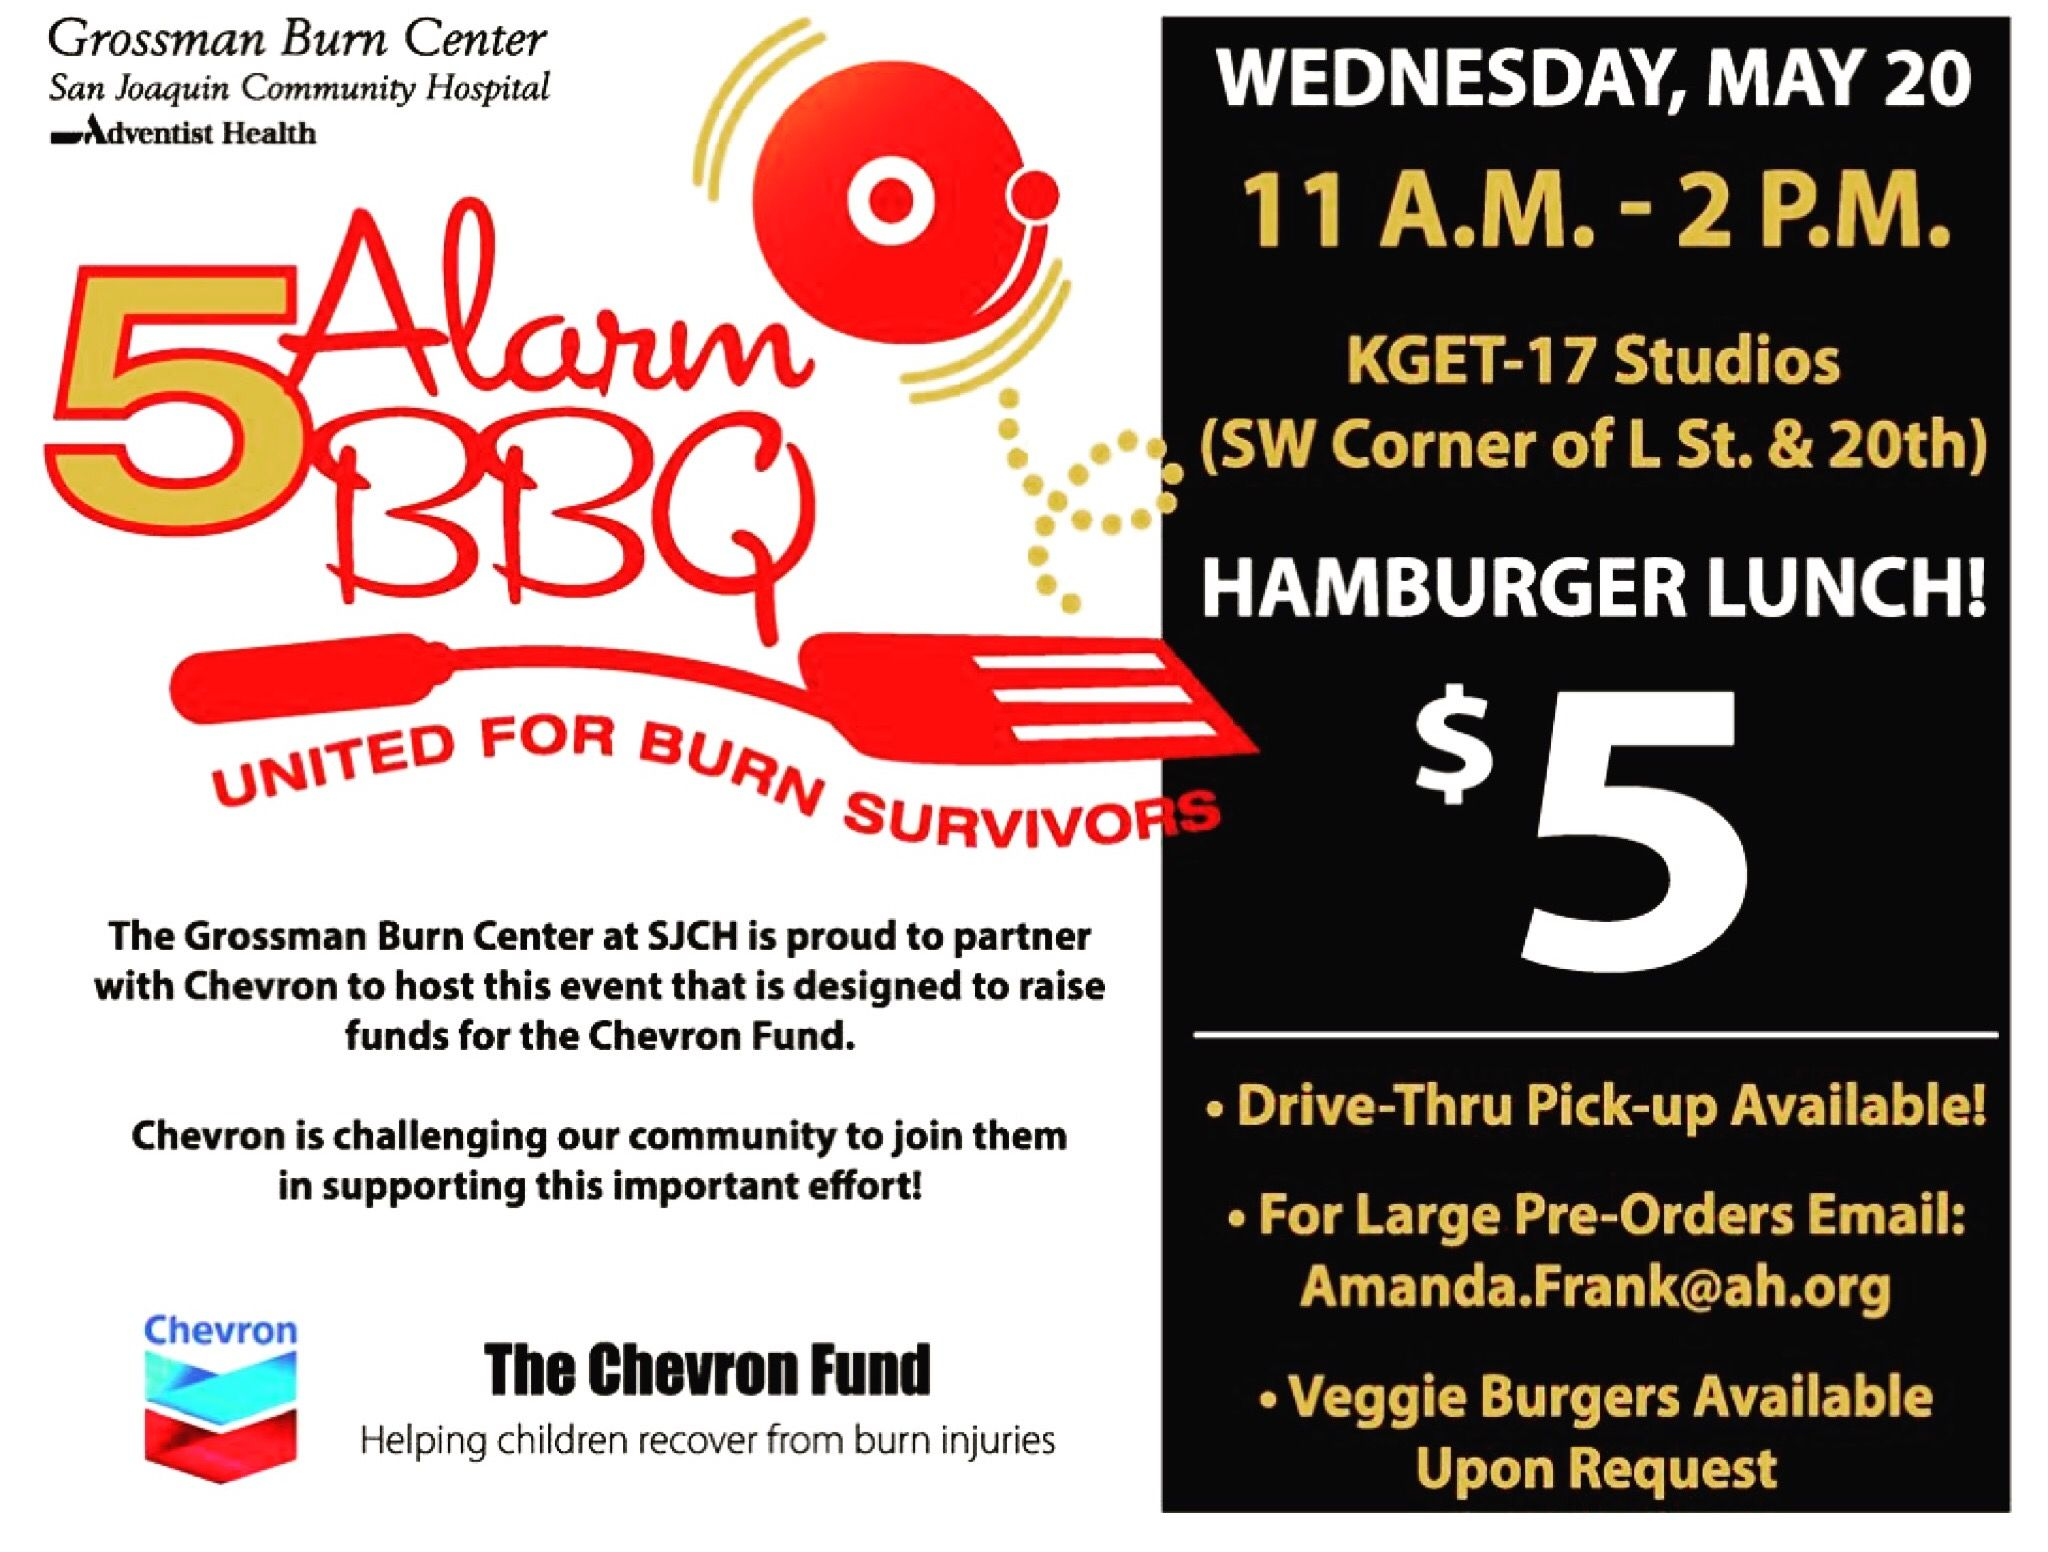 5 For A Hamburger Lunch Today And It Benefits Child Burn Victims Join Ccs And Support This Great Cause By San Joaquin Community Hospital Bakersfield Joaquin